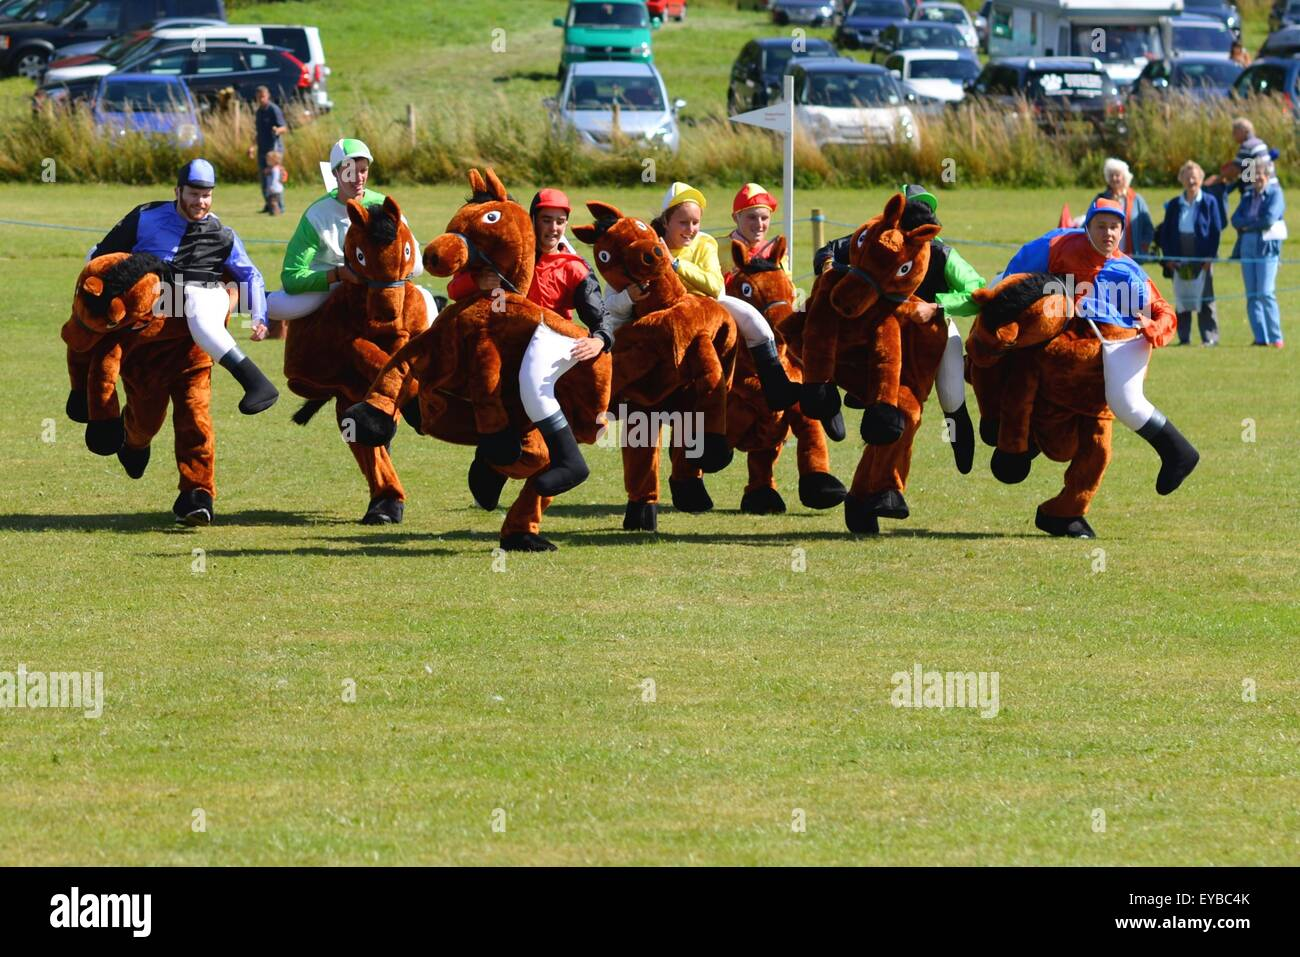 Hampshire, UK. 25th July, 2015. Runners and riders set of from the start in a Damerham Derby 'horse' race - Stock Image